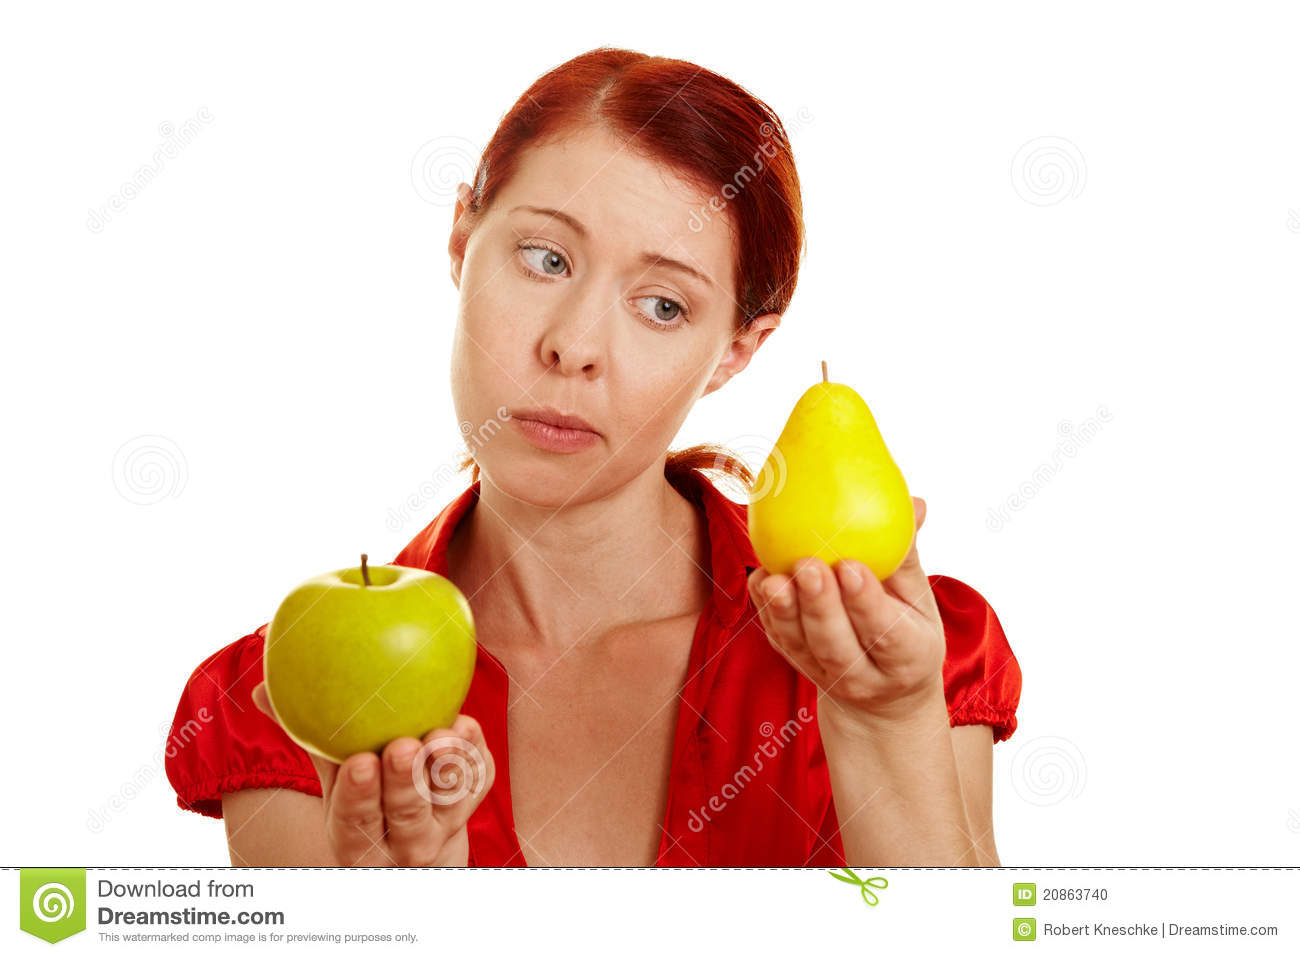 Woman Comparing Apple And Pear Stock Photo - Image: 20863740